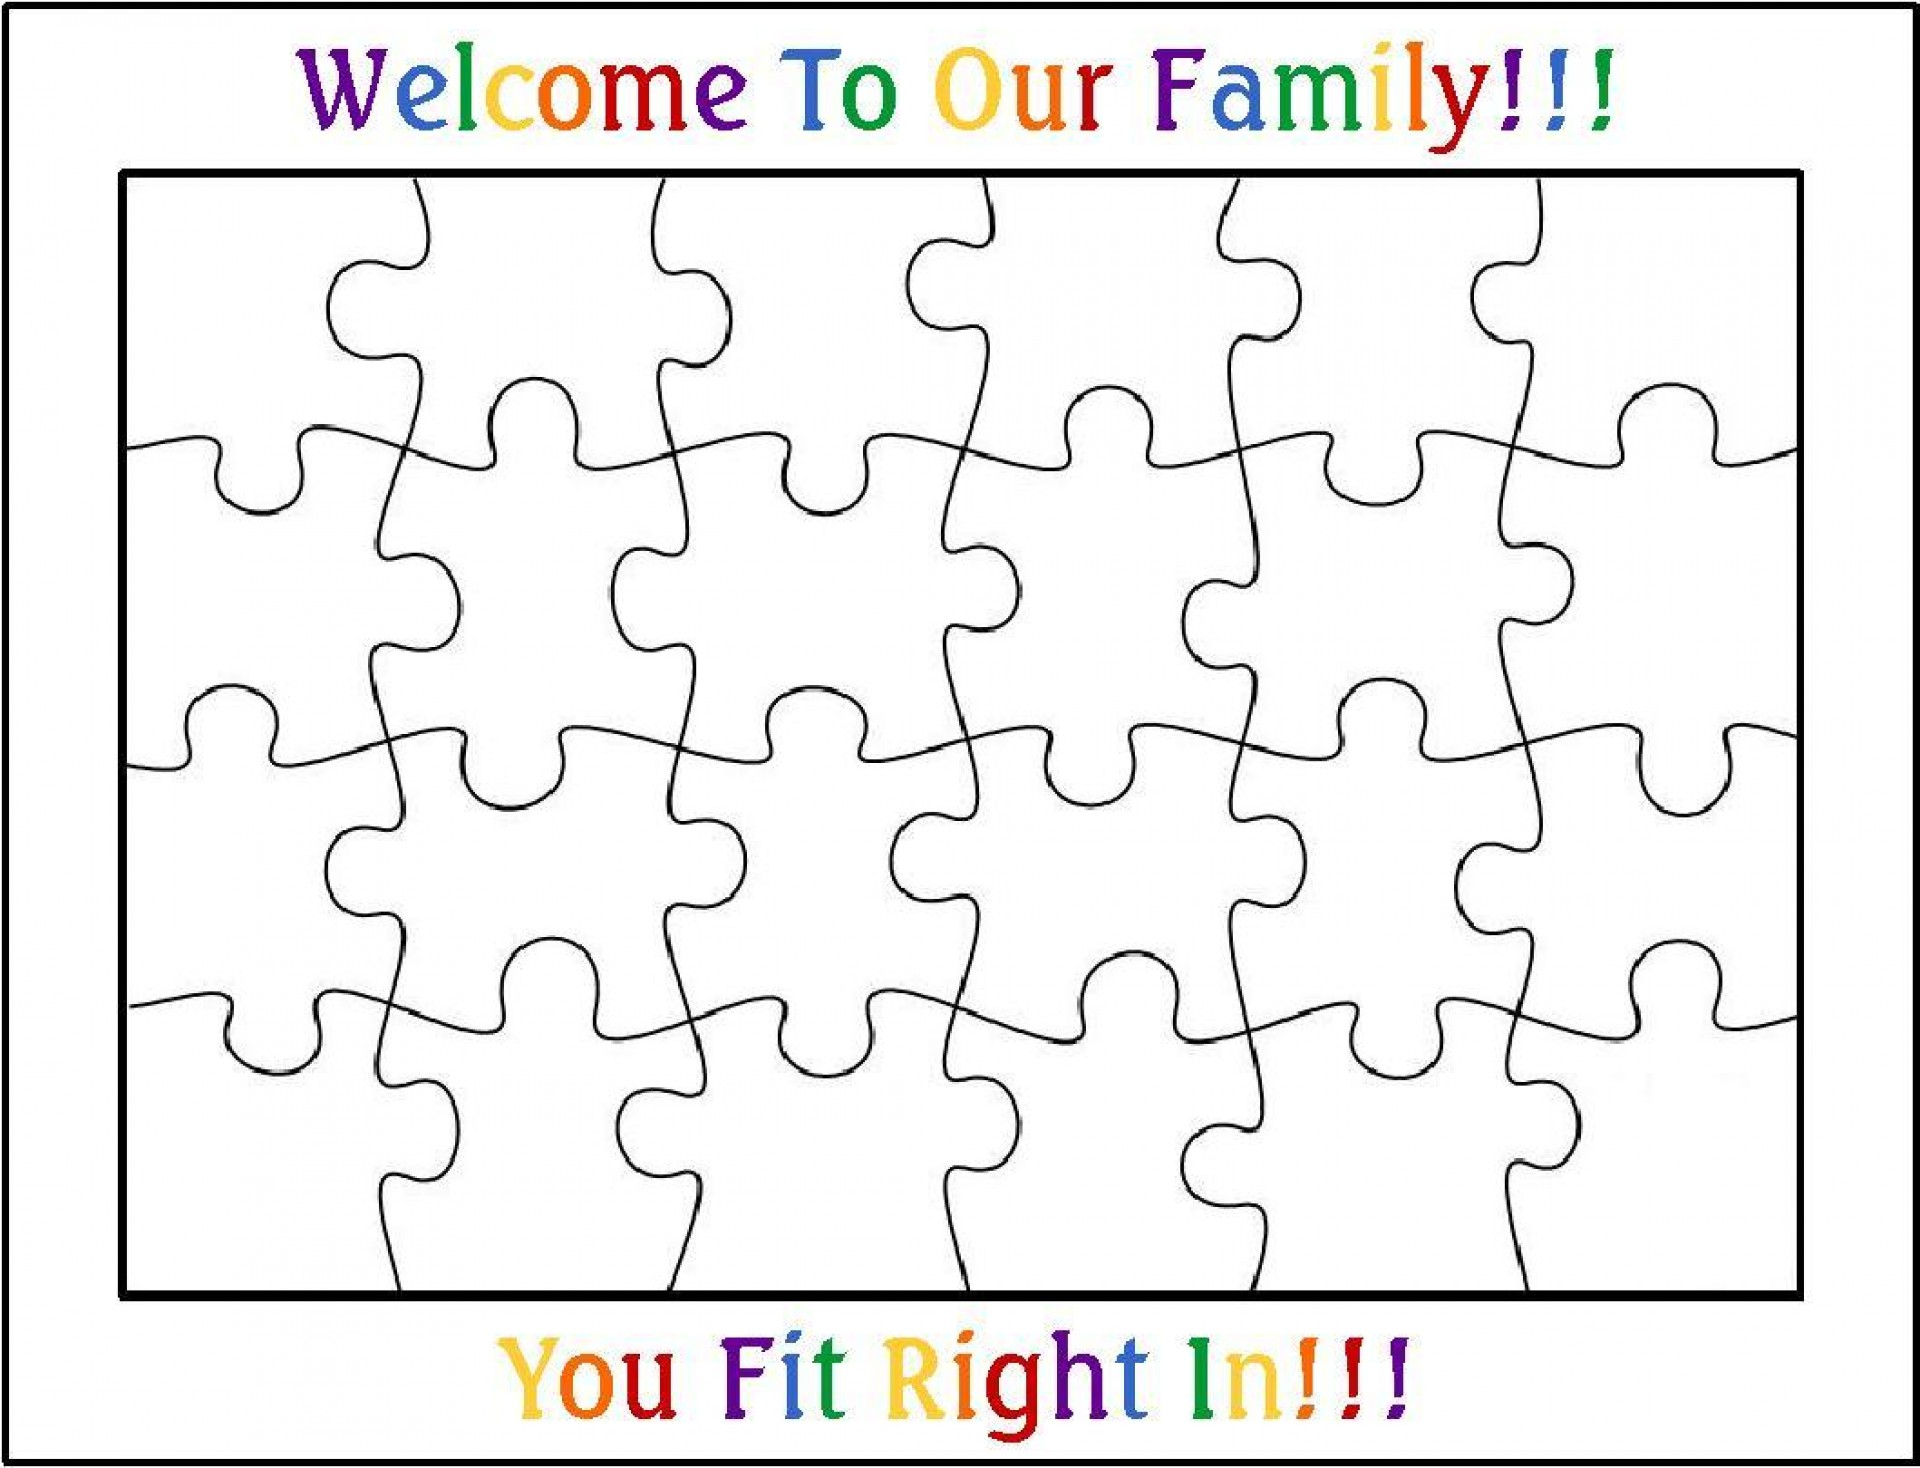 002 Blank Puzzle Pieces Template Ideas Best Jigsaw Piece Printable - 2 Piece Puzzle Printable